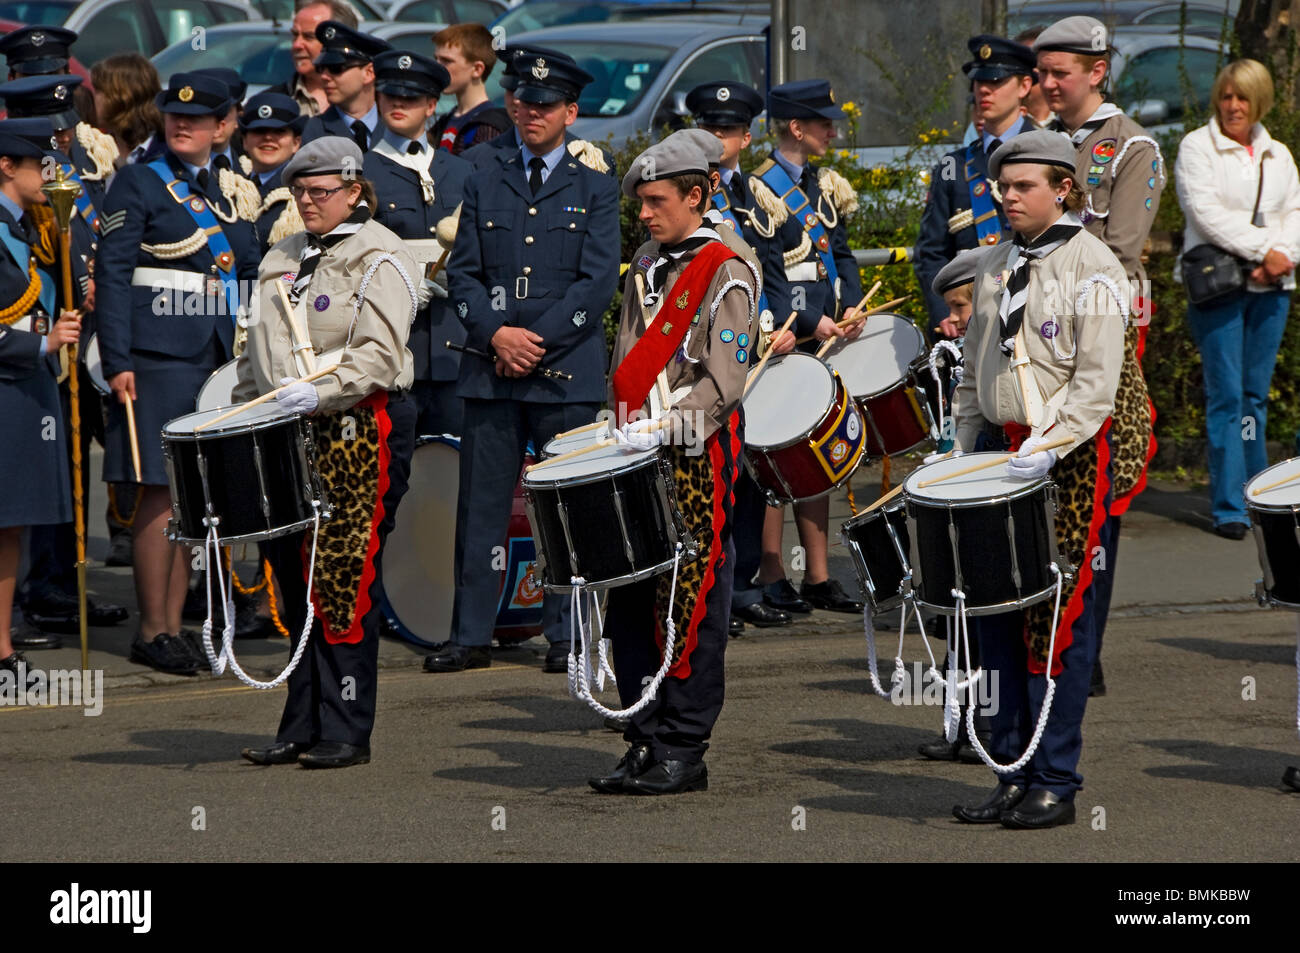 Drummers in the Scout band York North Yorkshire England UK United Kingdom GB Great Britain - Stock Image